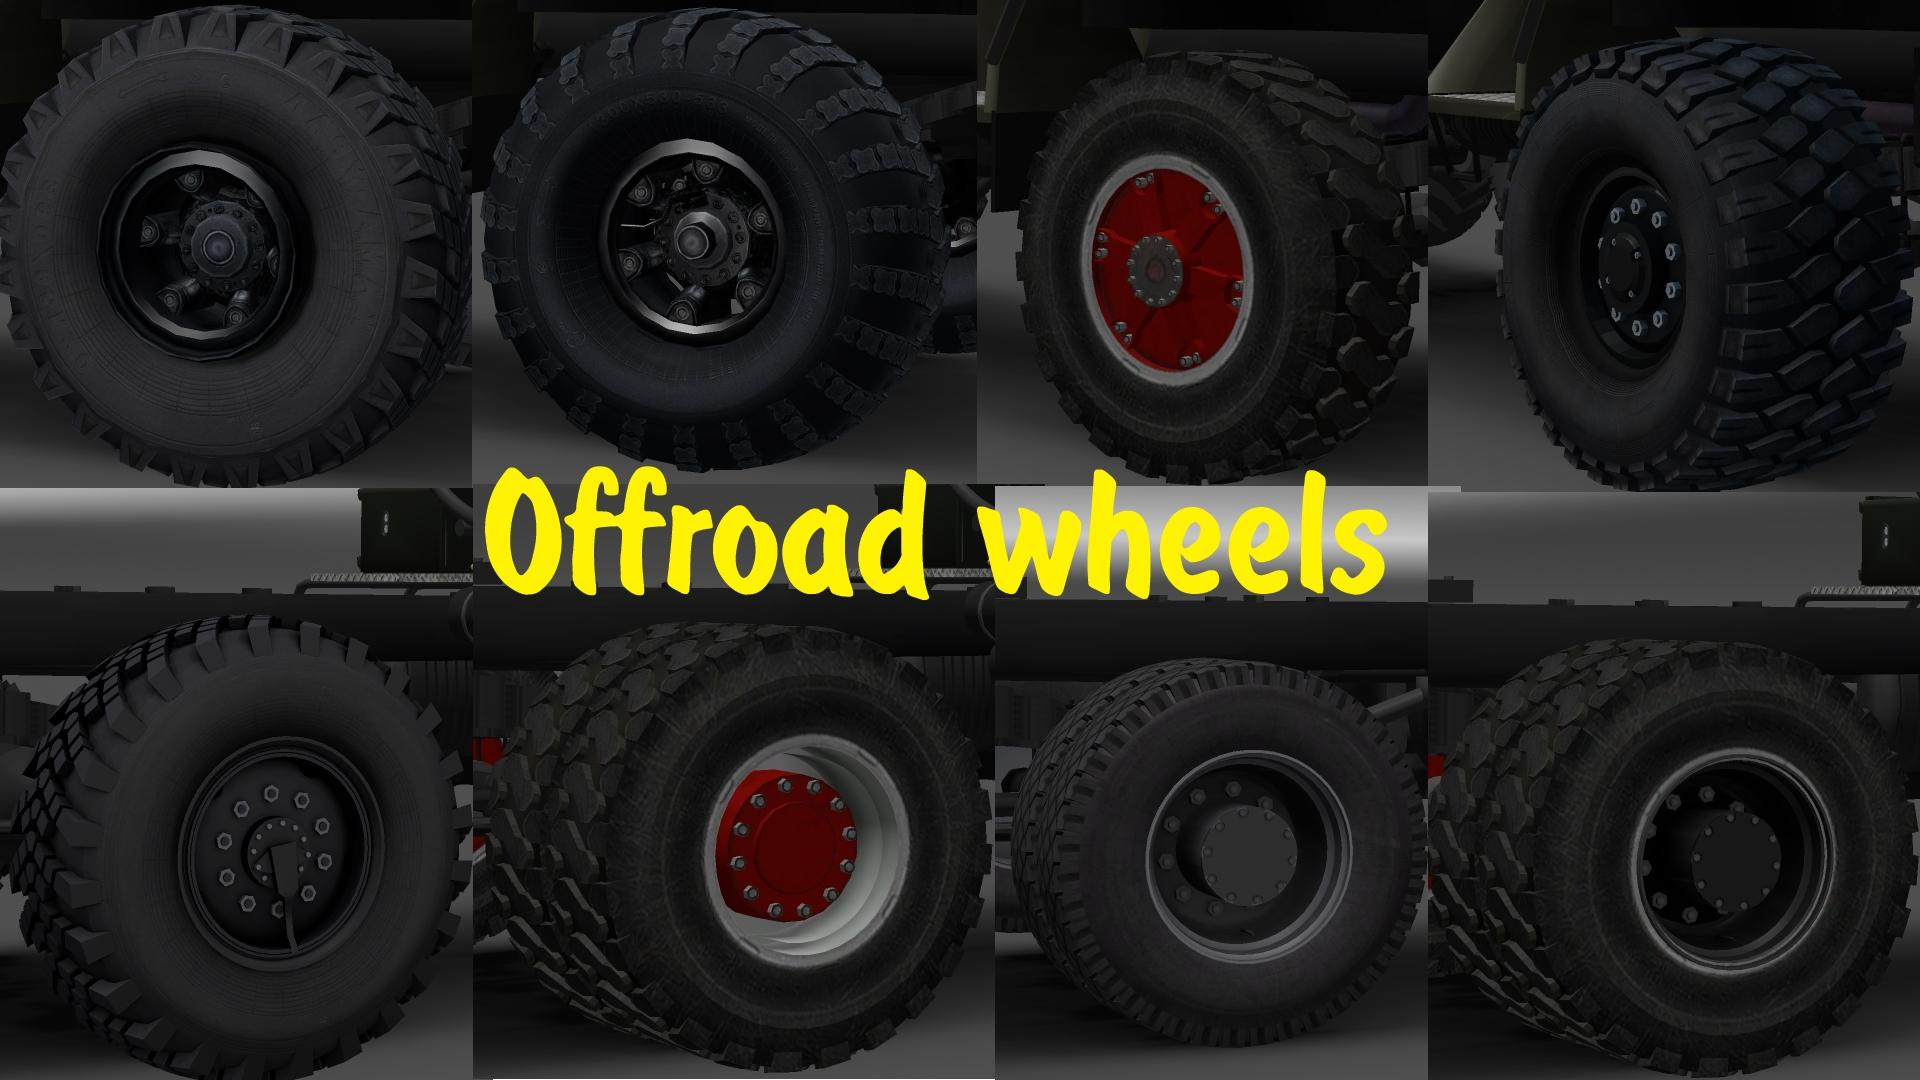 the-collection-of-off-road-wheels-1-19-1-22_1